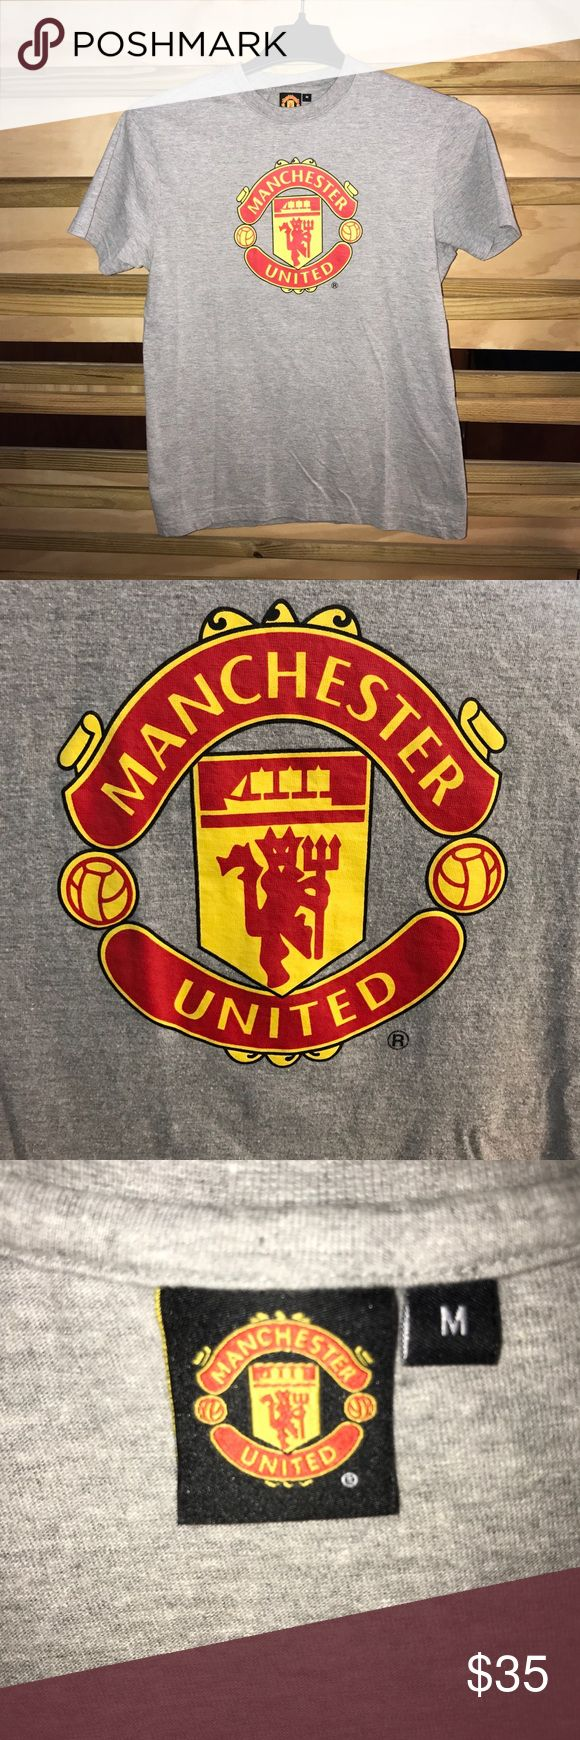 Authentic Man Utd Merchandise Manchester United T-shirt from Old Trafford In Manchester, England!! Soccer fans hurry and buy this shirt is a steal! Manchester United Shirts Tees - Short Sleeve